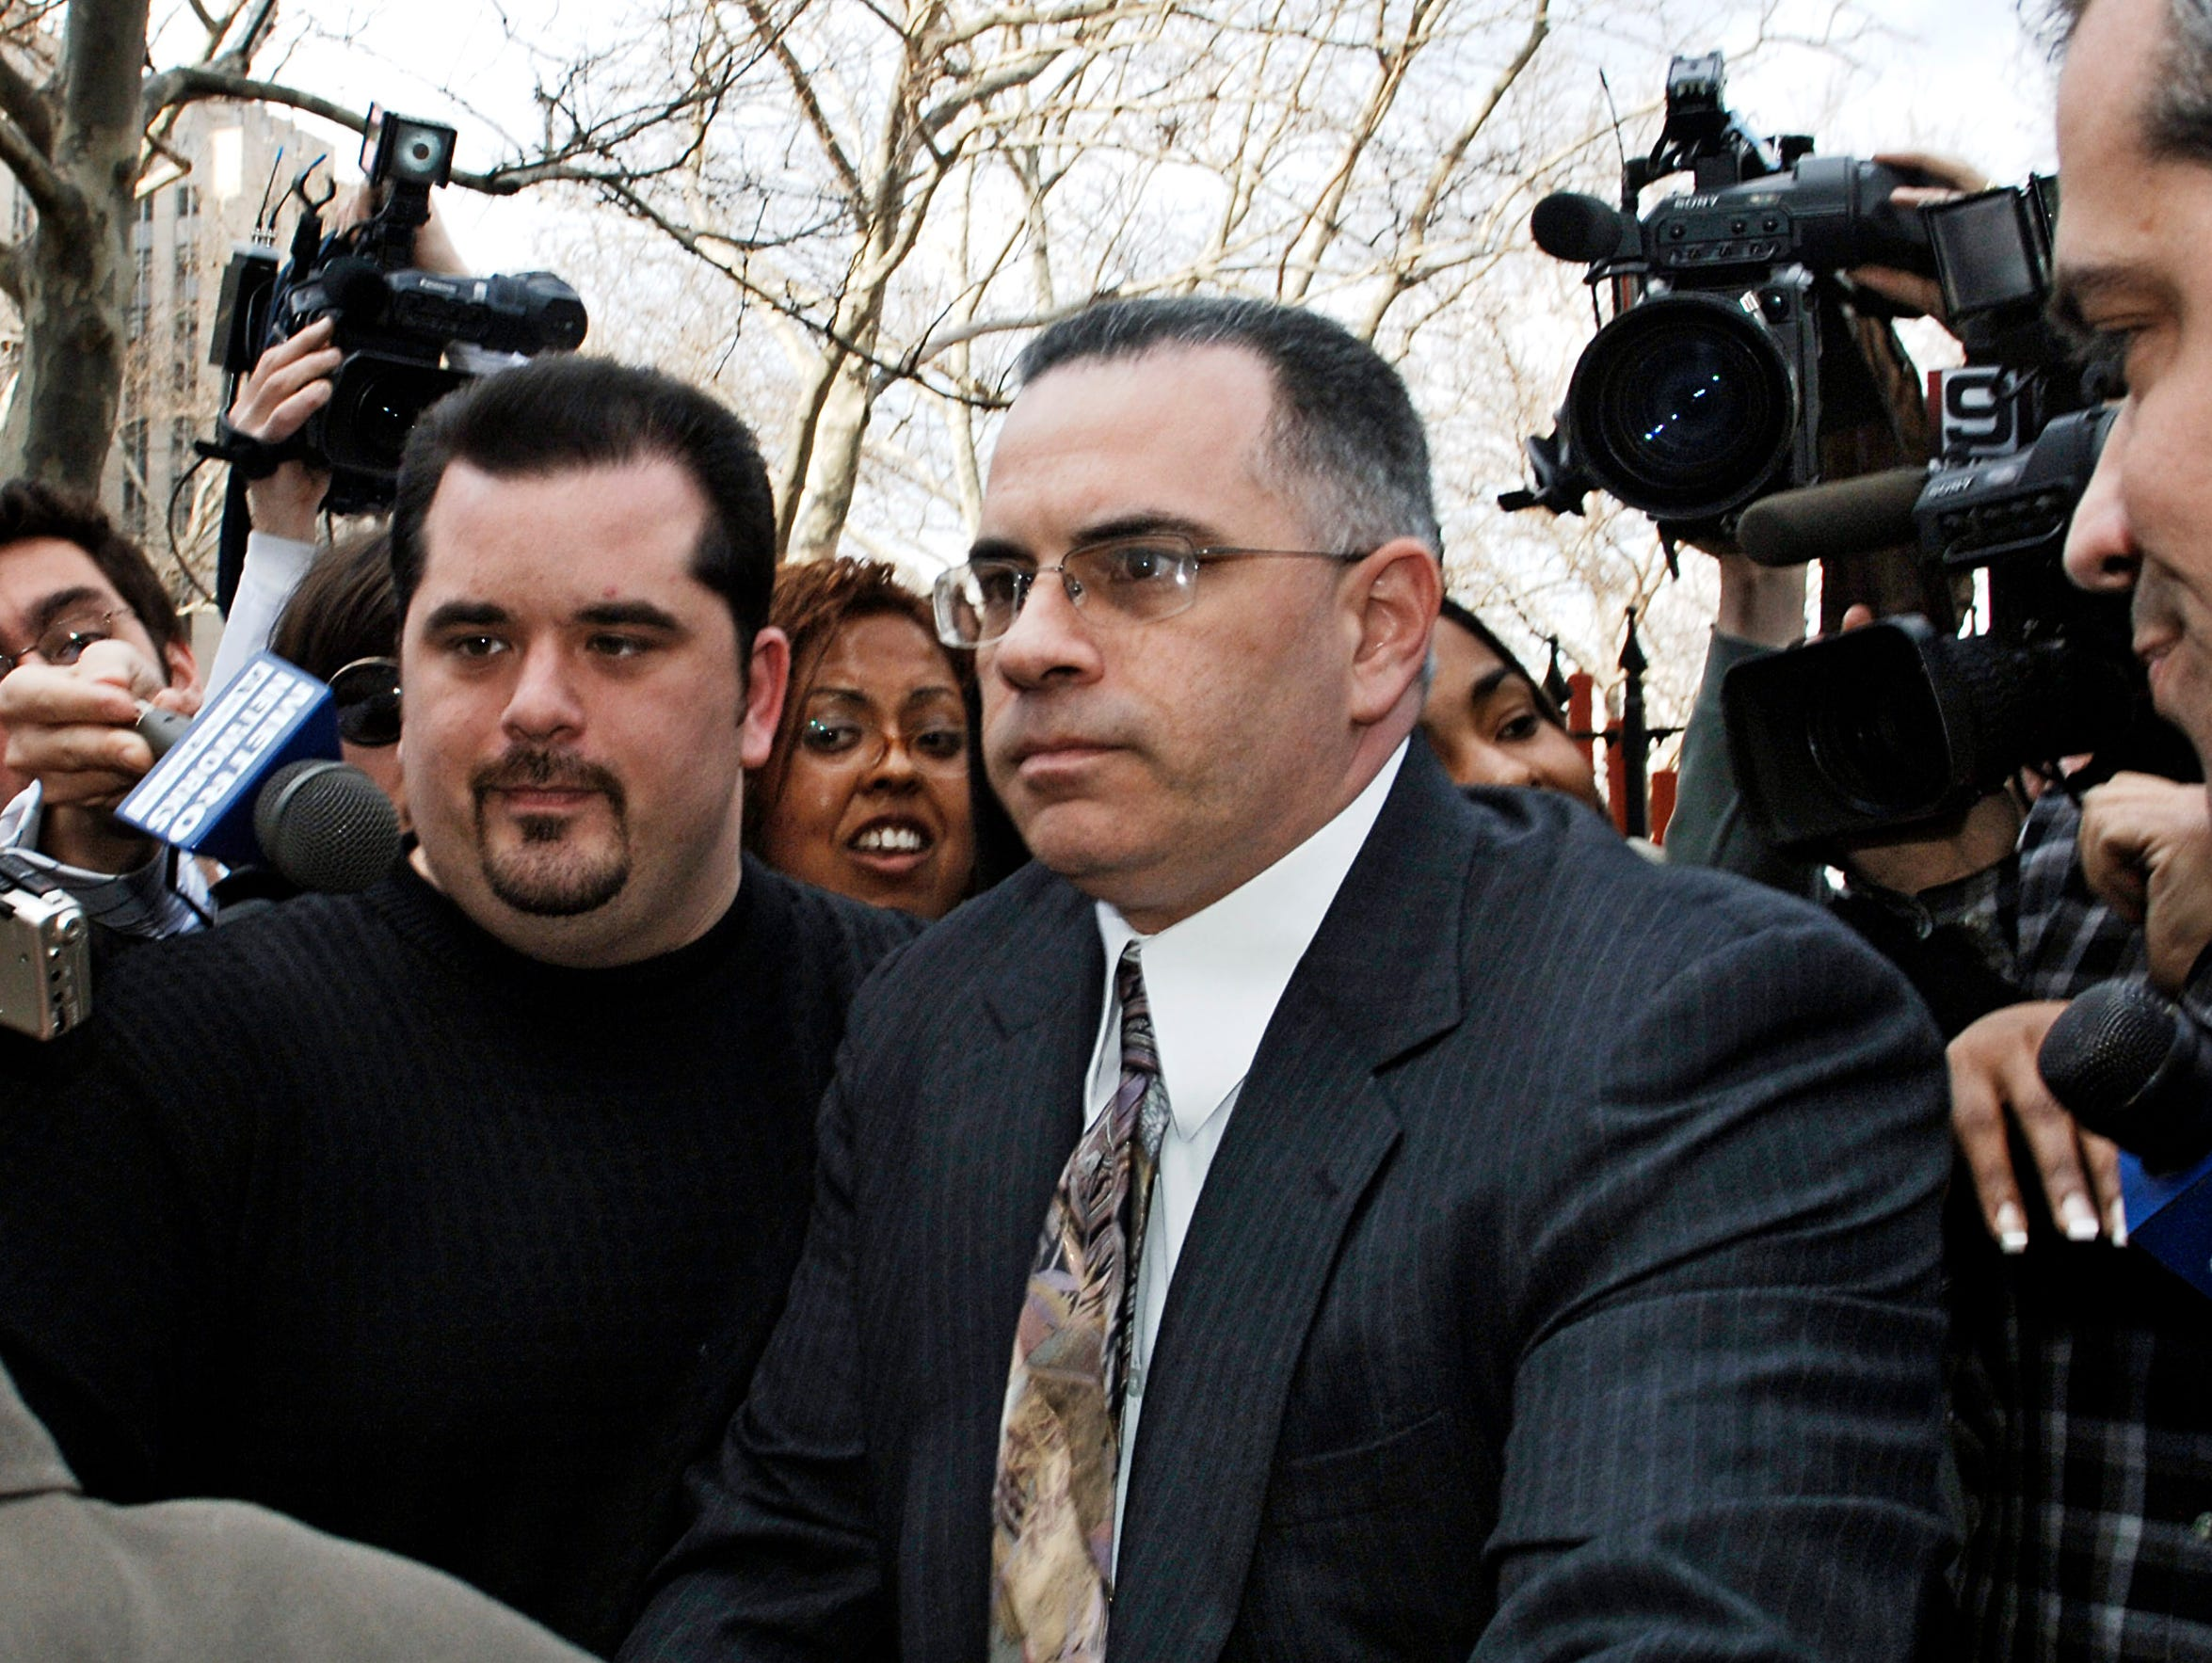 """John A. Gotti, shown in 2006, was the former acting boss of the Gambino crime family and the son of legendary """"Teflon Don"""" John Gotti."""